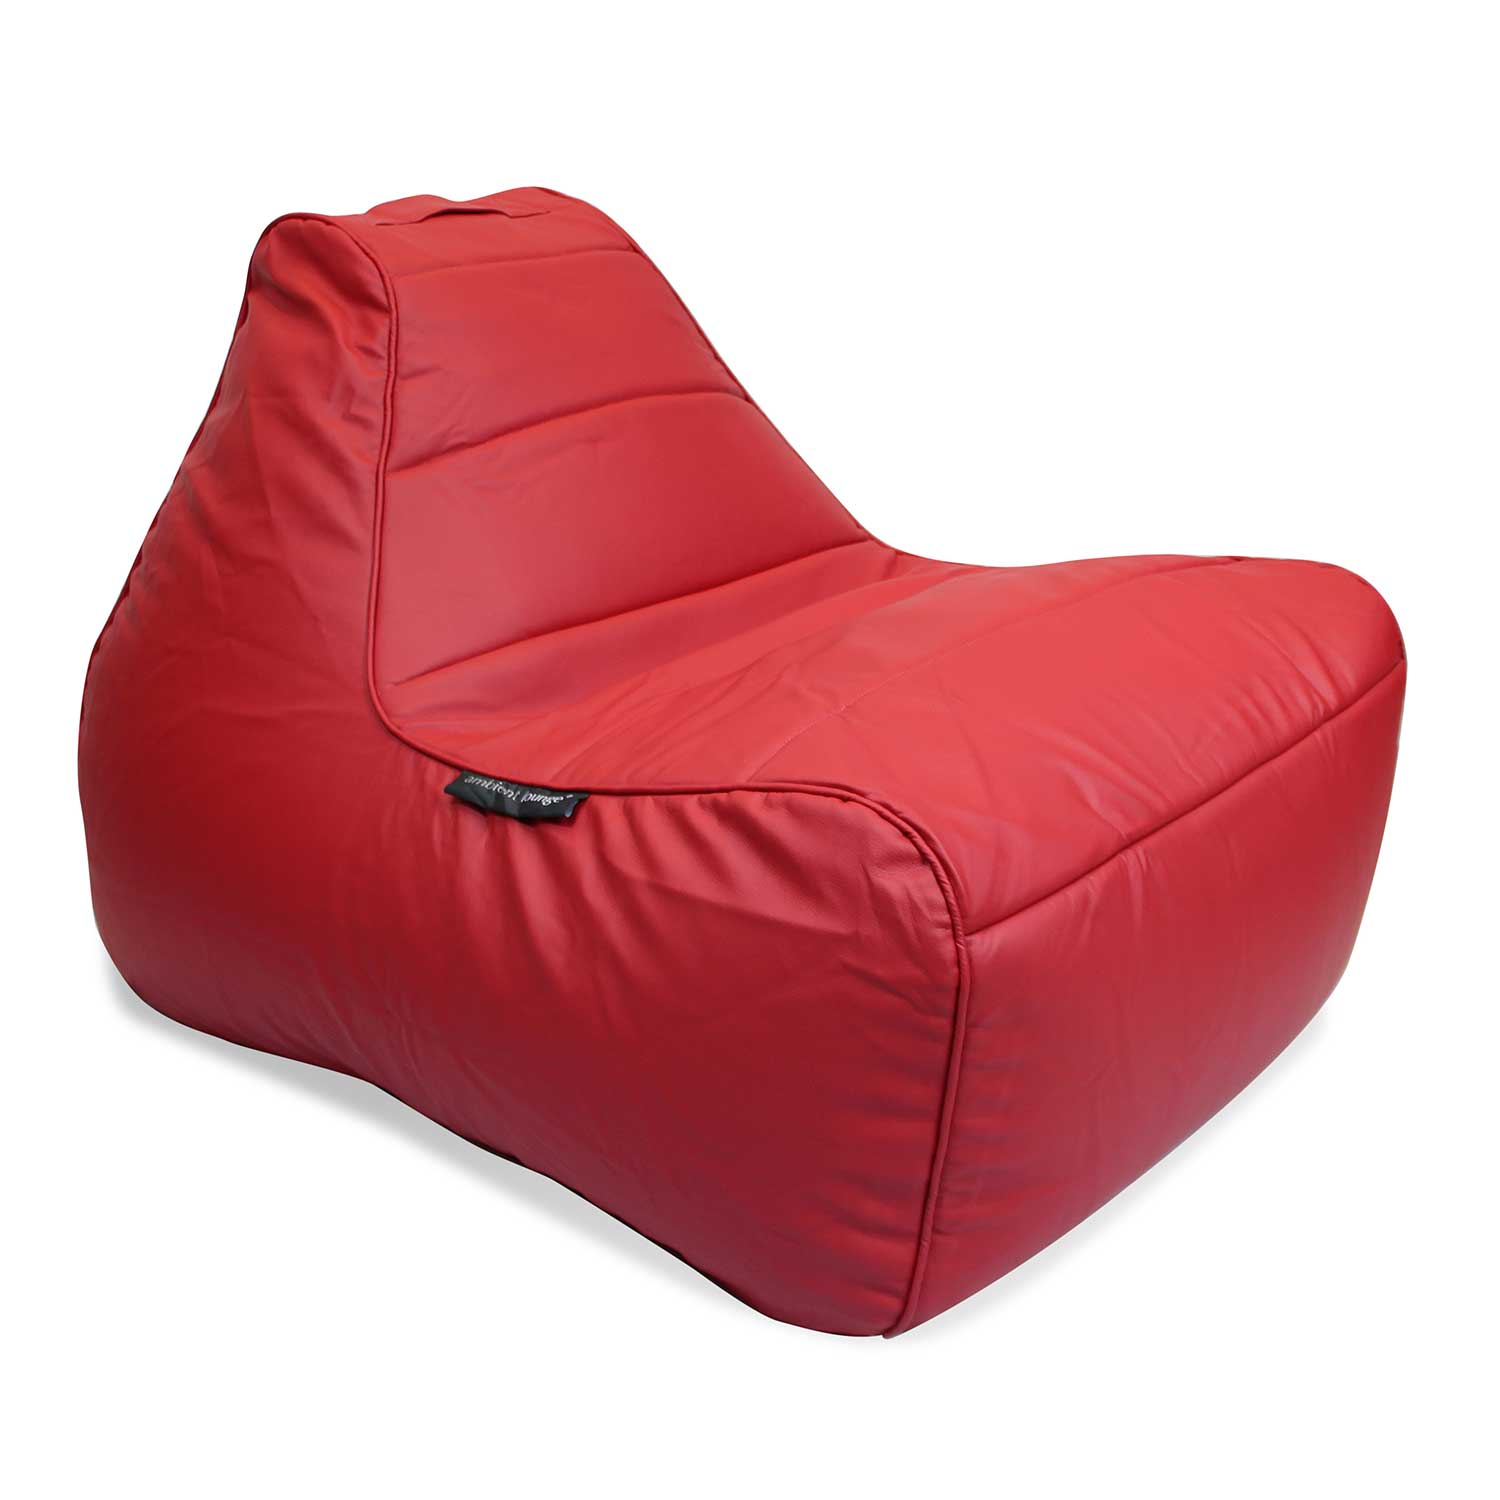 Mode Red Lounger Bean Bag Chair Tivoli Lounger Bean Bag